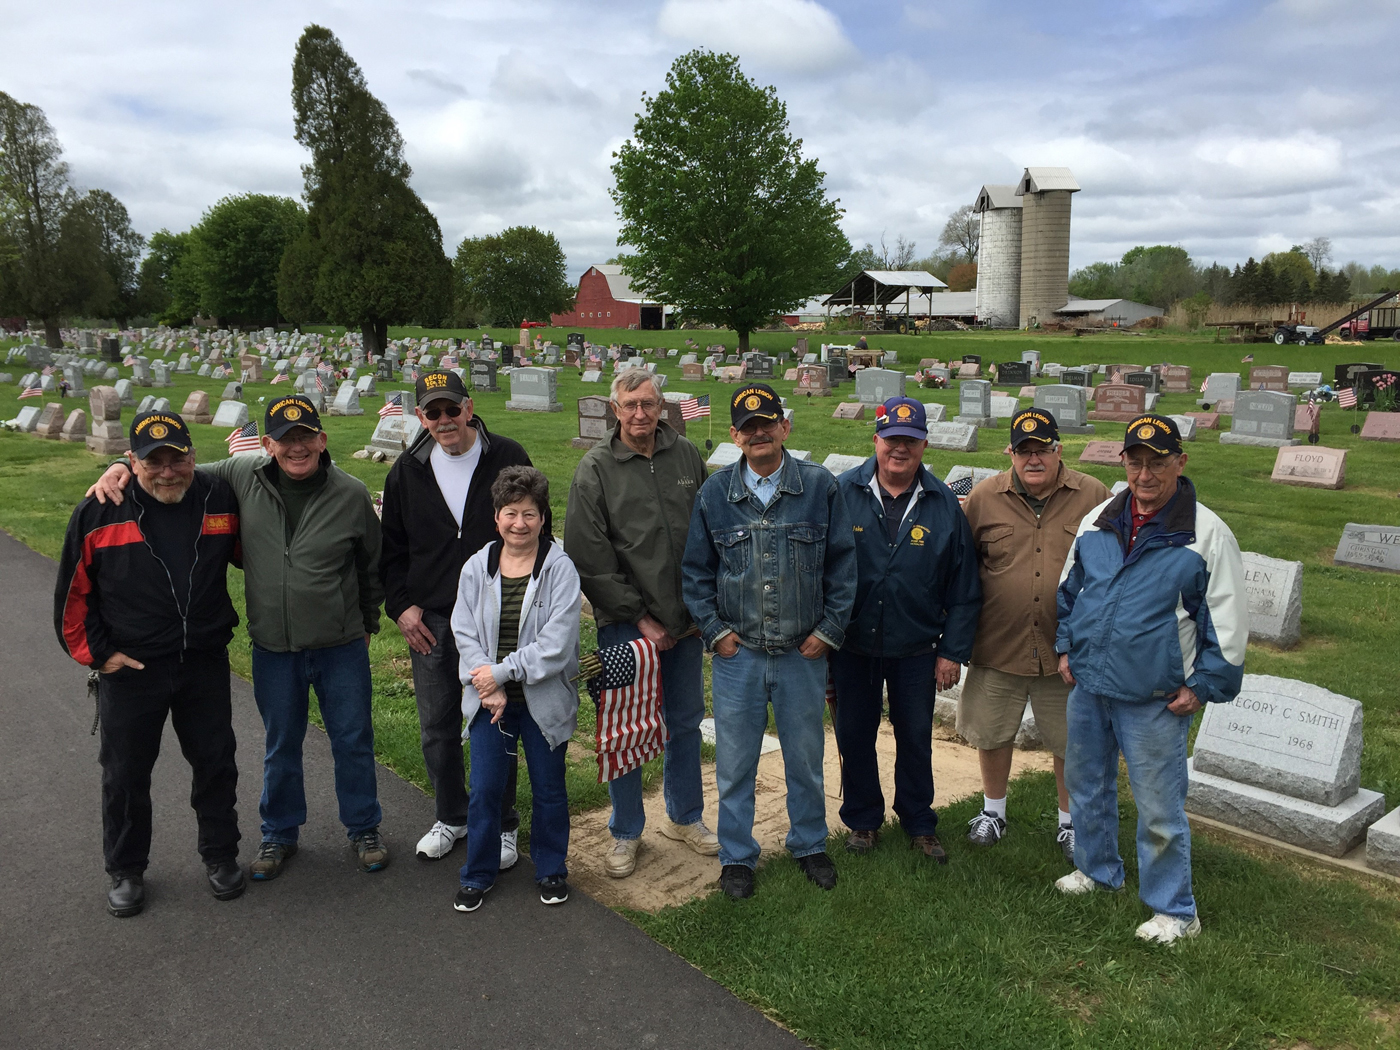 Members of Hiscock-Fishbaugh American Legion Post 788 and the Hilton-Parma Honor Guard place flags on Veterans' headstones at Parma-Union Cemetery May 19, 2016. Provided photo